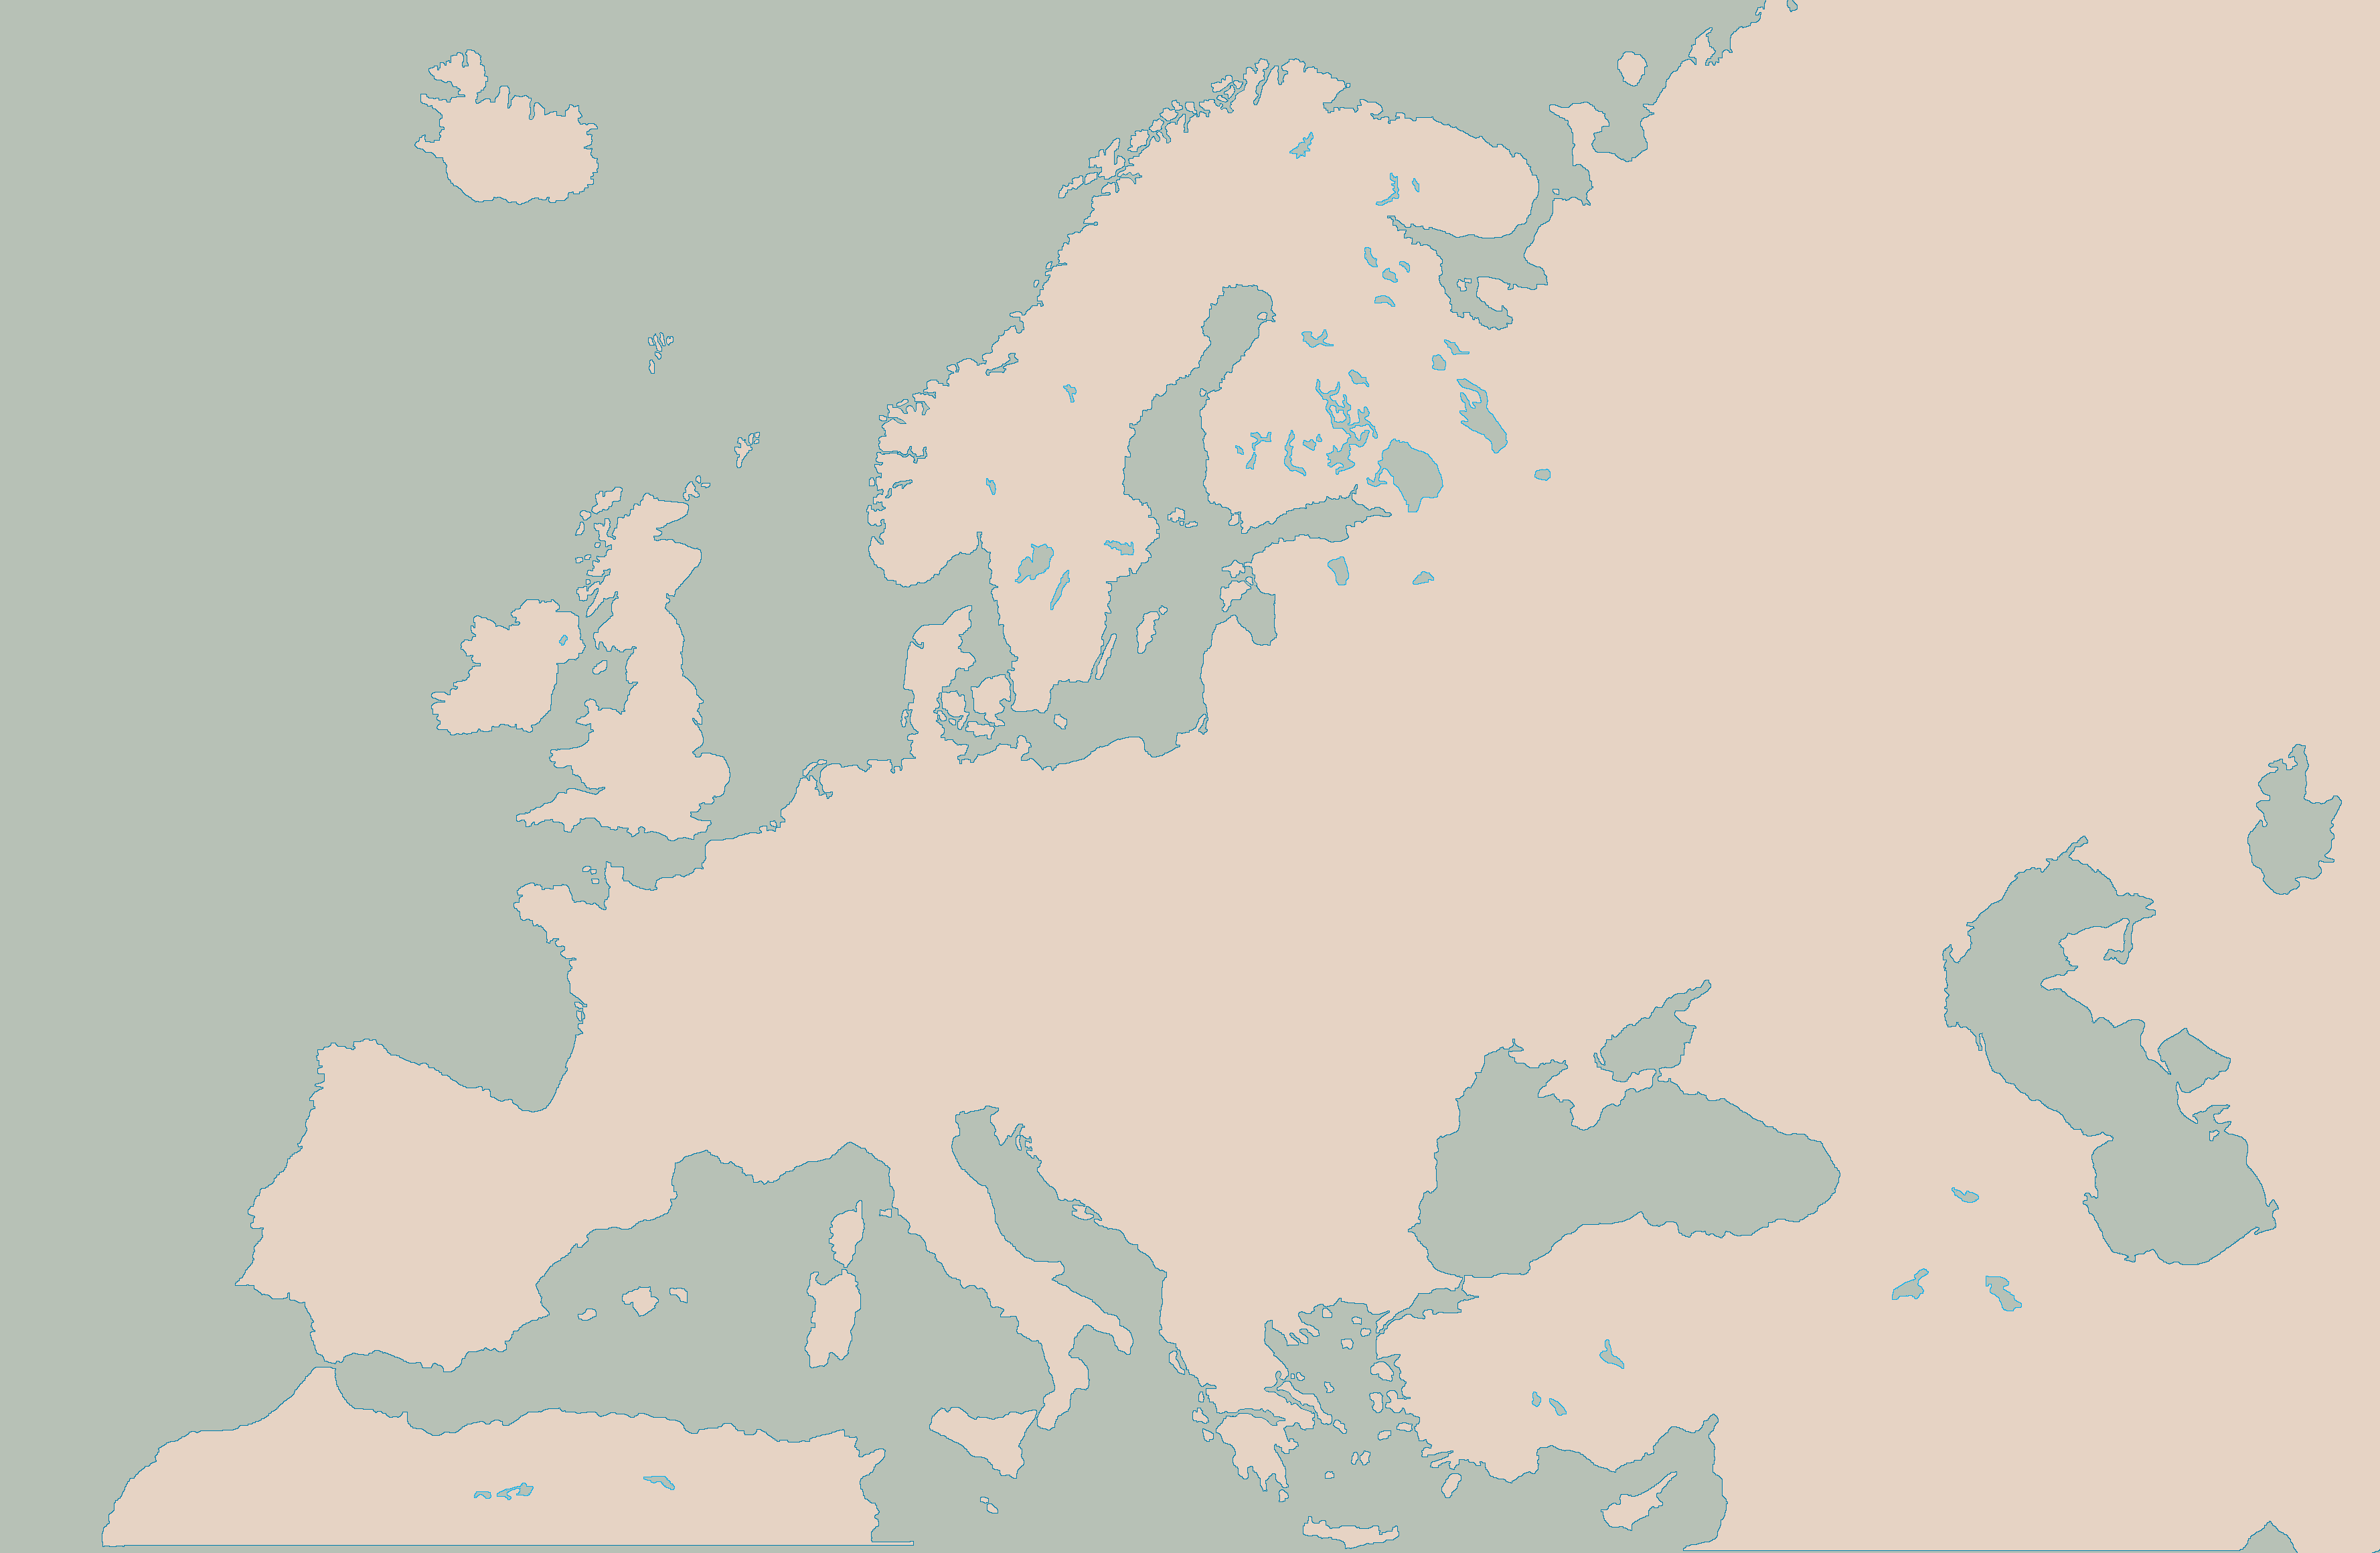 Map Of Europe Blank No Borders.Images Of Europe Blank Map No Borders Rock Cafe